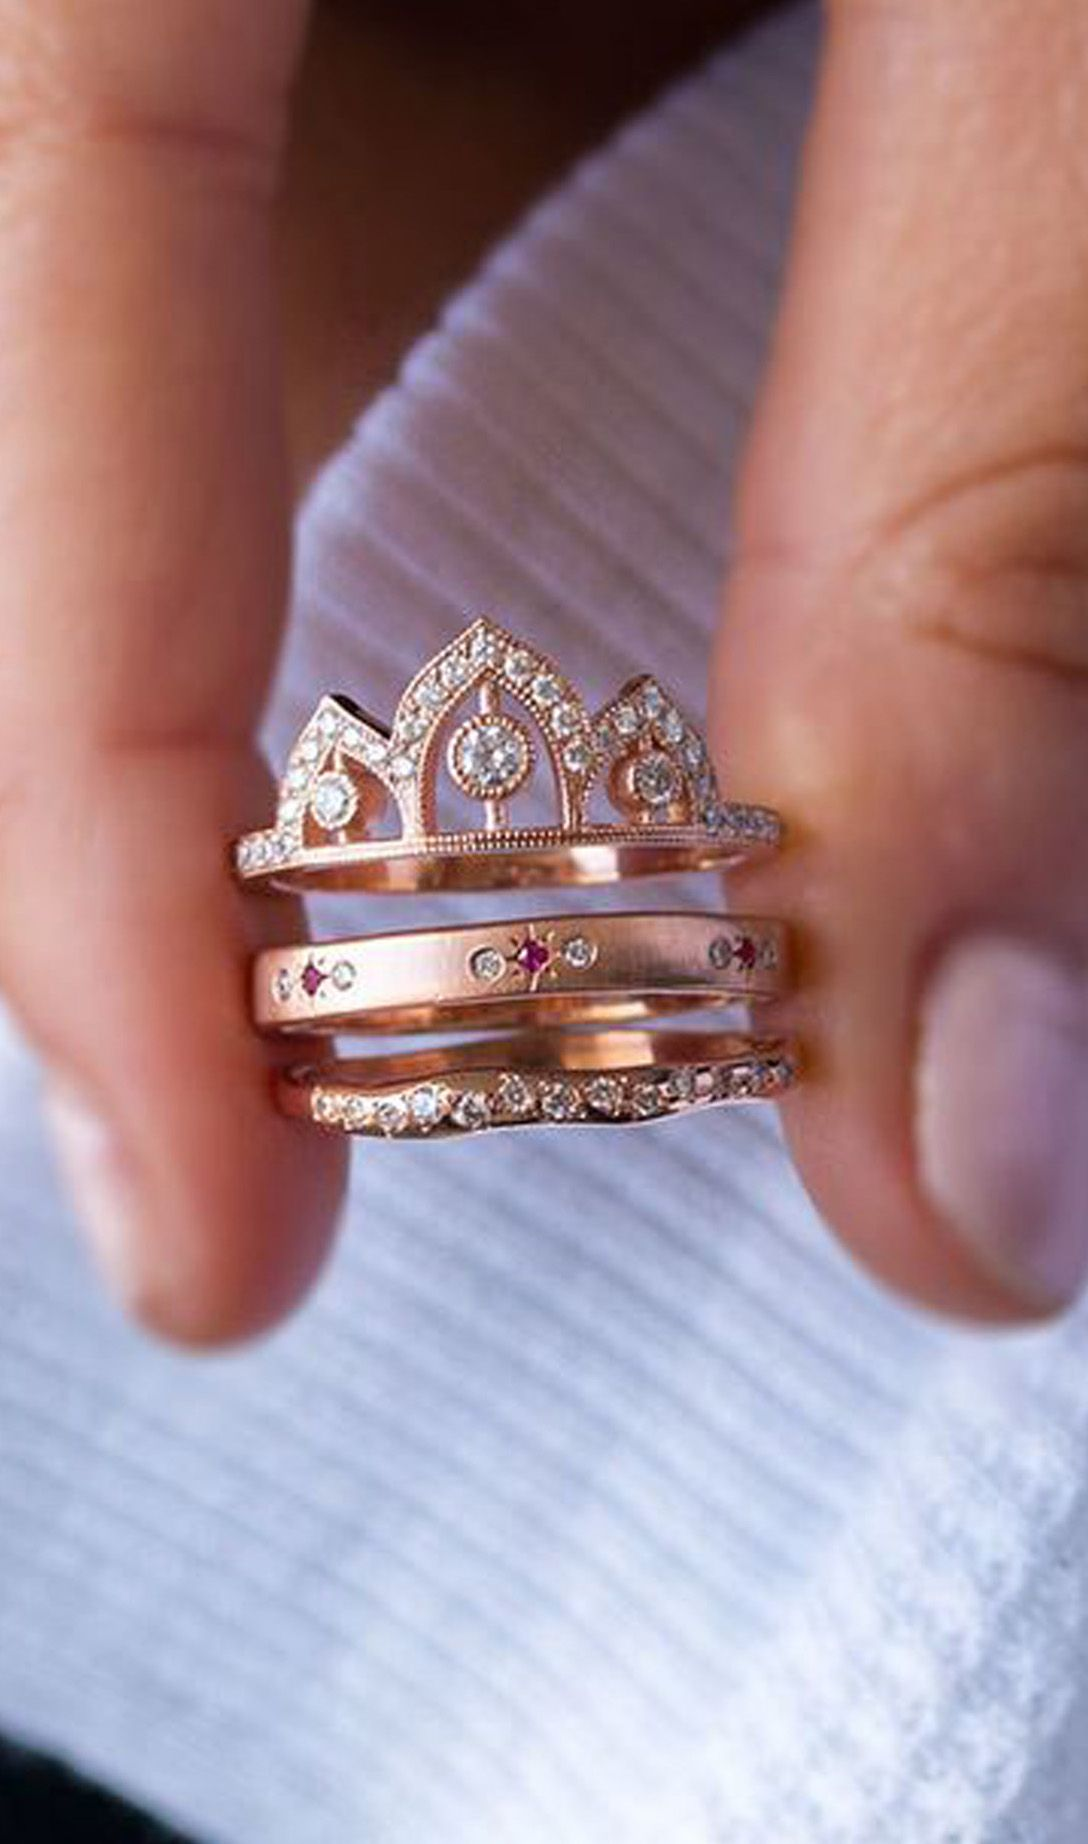 c71bf0fe7f cute crown rose gold rings engagement wedding graduation for women for teen  girls fashion jewelry www.jewolite.com